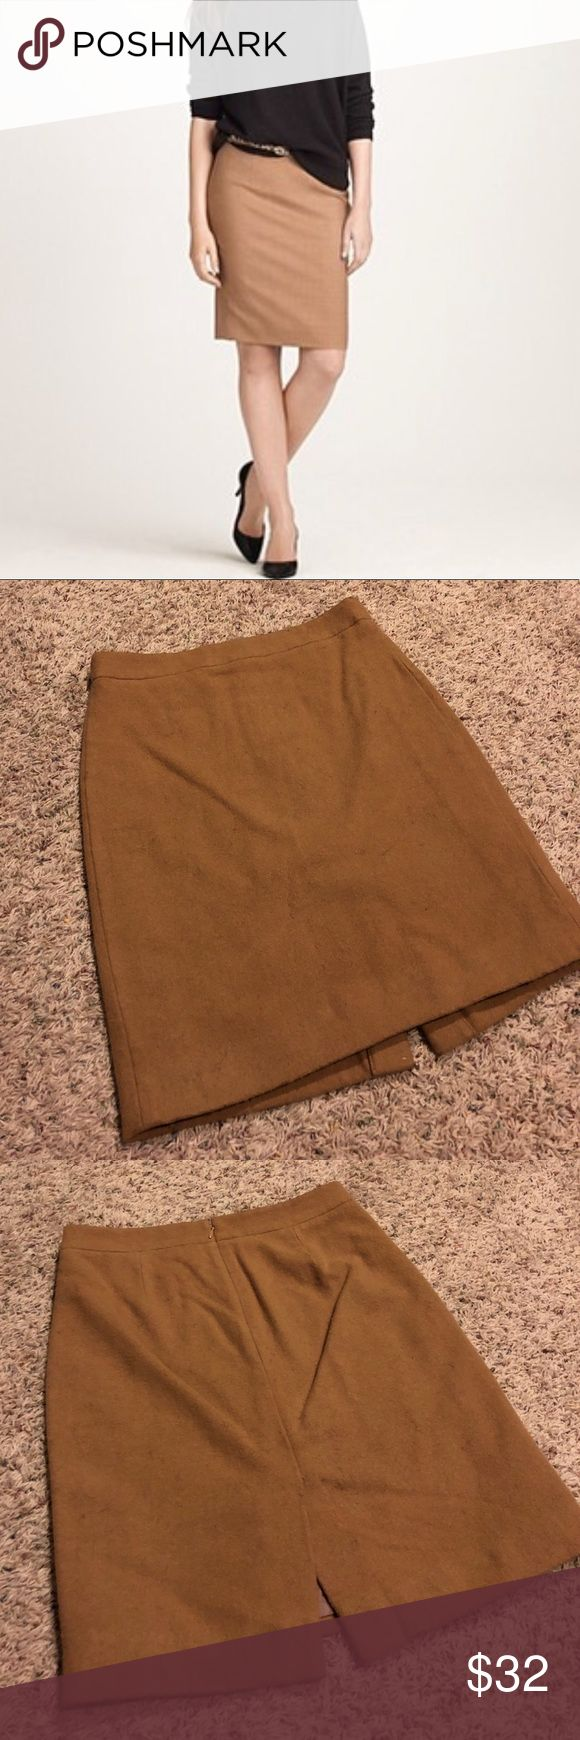 "J crew tan pencil skirt A staple in anyone's wardrobe!  Size 2.  Tan.    Feels like wool but it is 70% laine and 30% viscose.  Fully lined.  Dry clean only. Perfect for winter.  Waist is 14"" across.  Length is 20"". J. Crew Skirts Pencil"